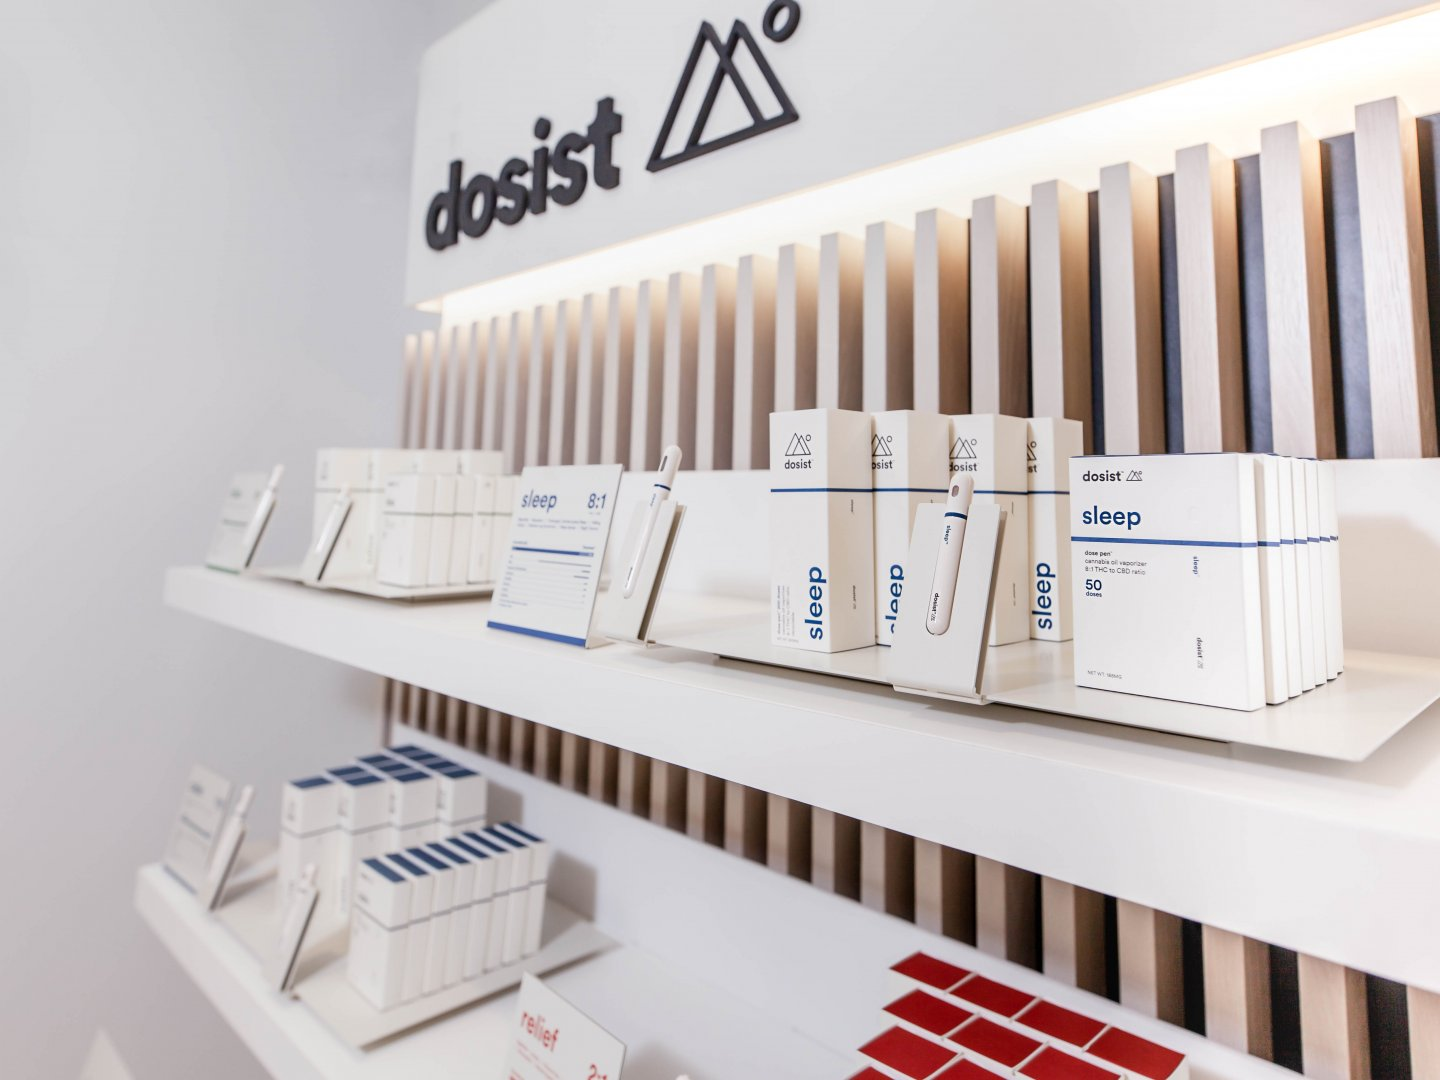 Dosist : Elevating the Dispensary Shop-in-Shop